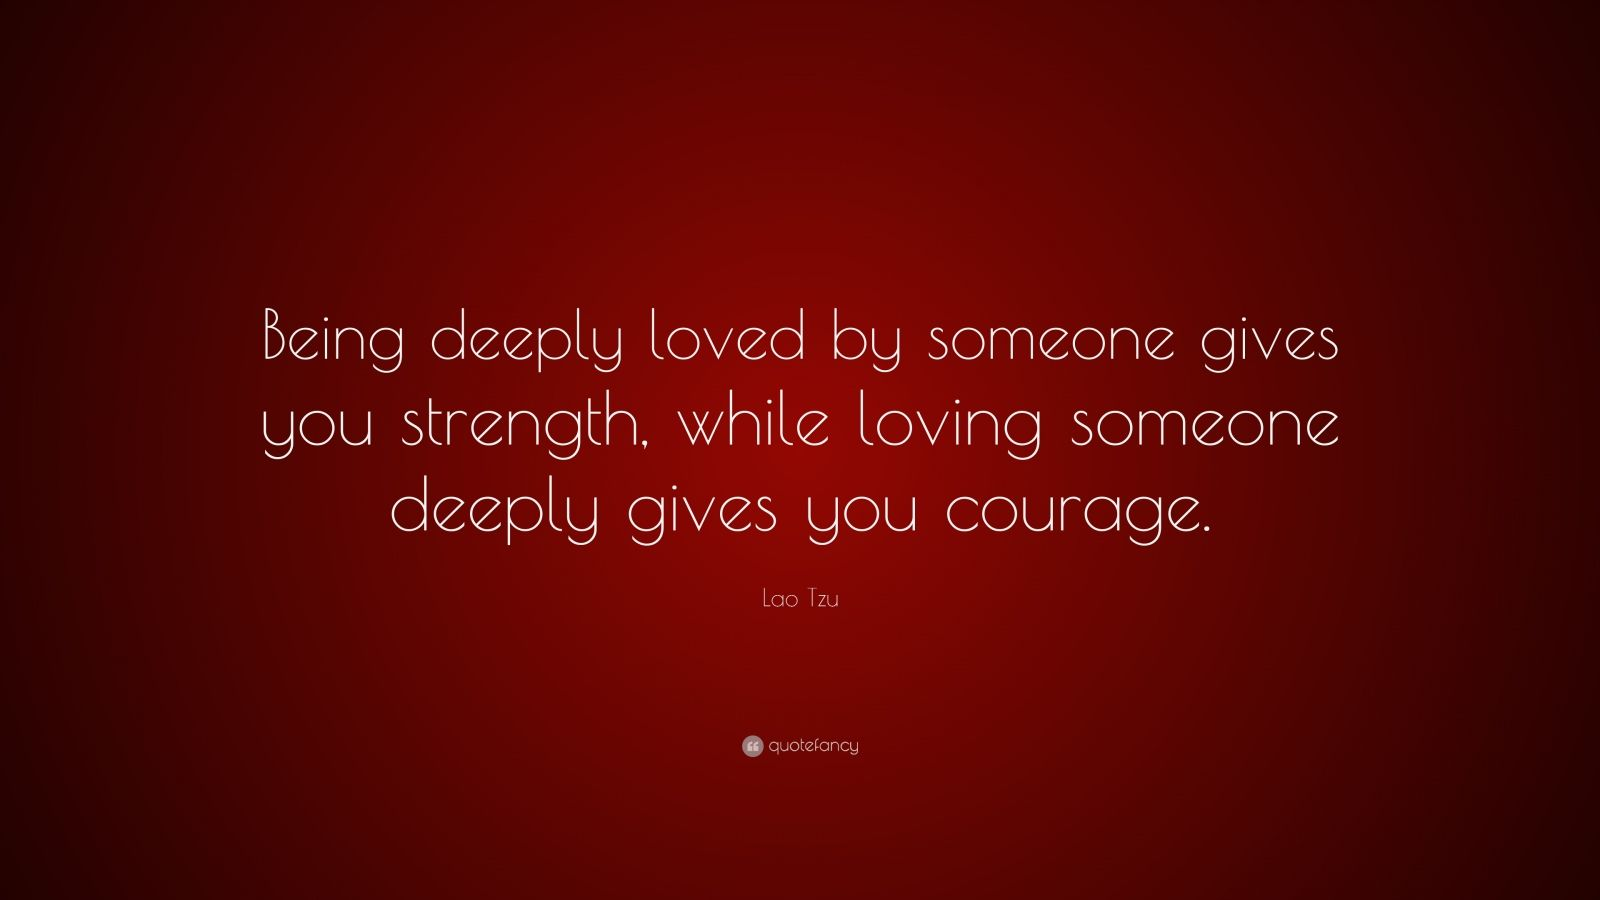 Lao Tzu Quotes Life Being Deeply Lovedsomeone Gives You Strength While Loving